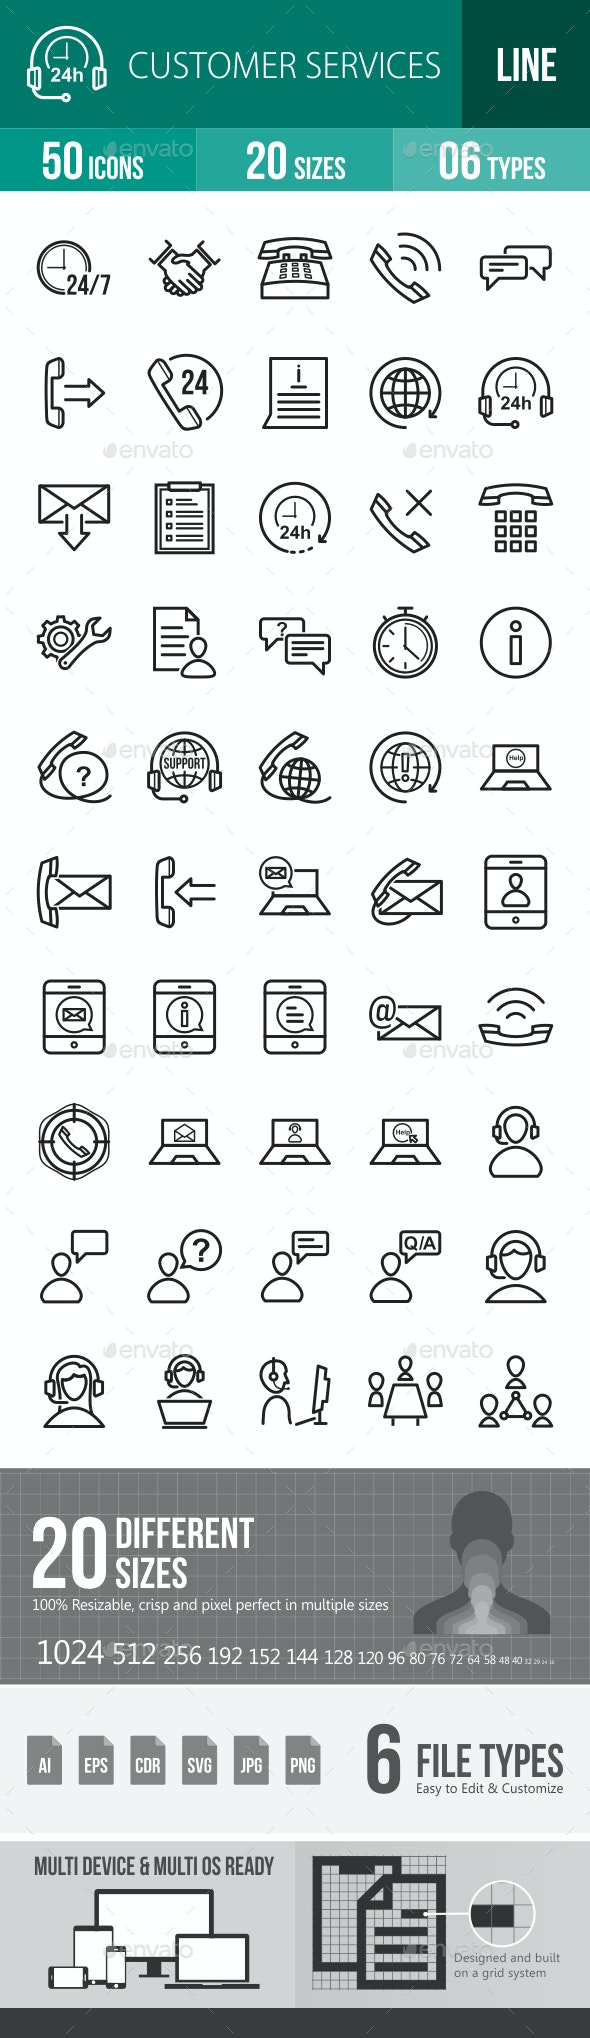 Customer Services Line Icons - Icons